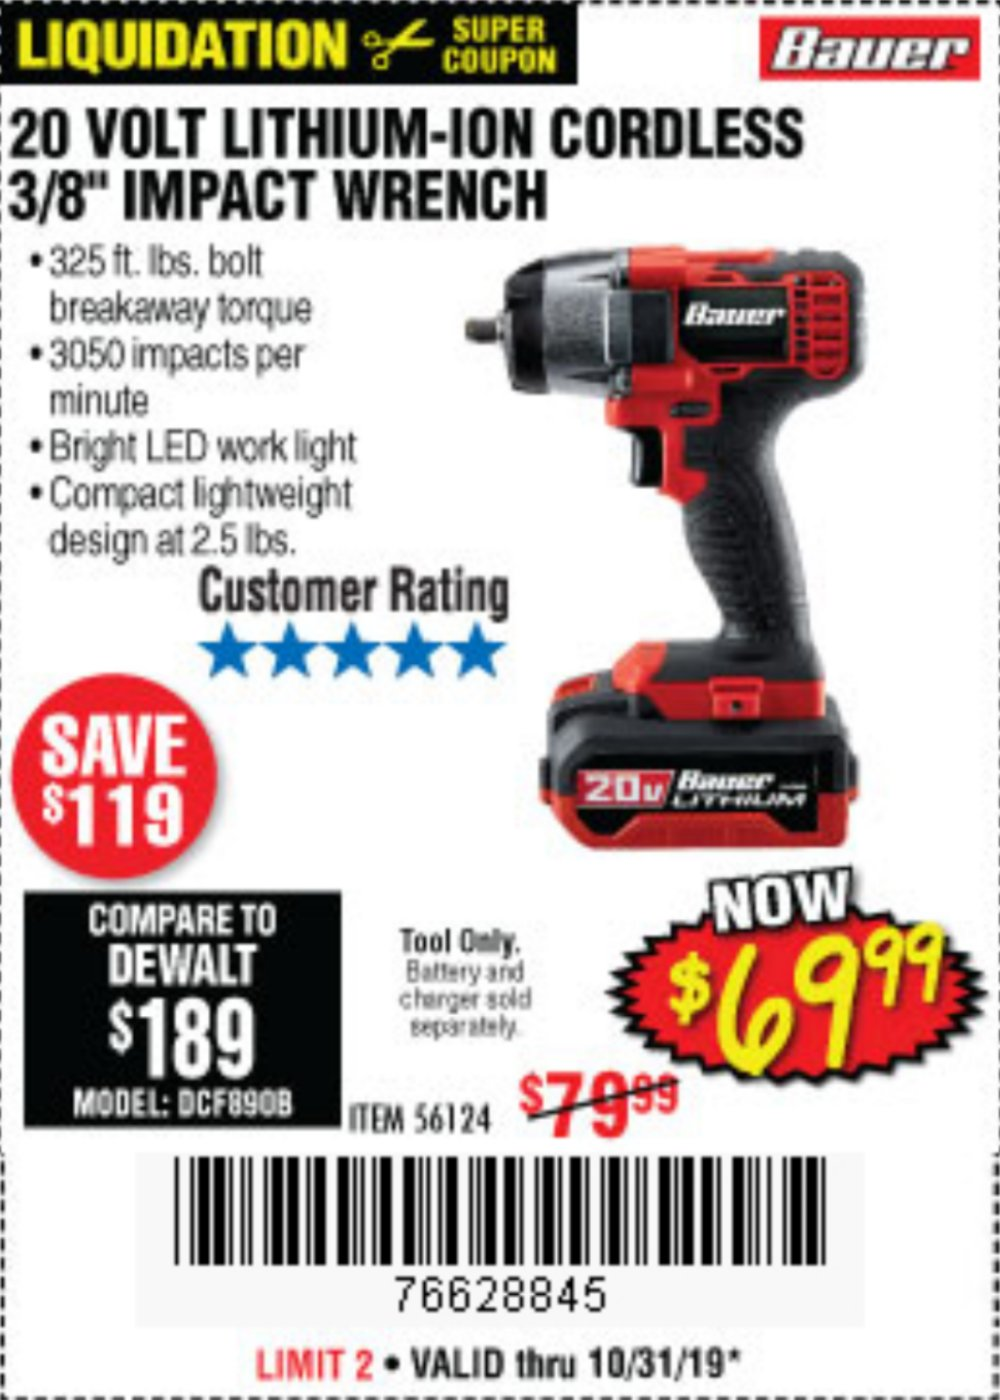 Harbor Freight Coupon, HF Coupons - Bauer 20 Volt Lithium Cordless, 3/8